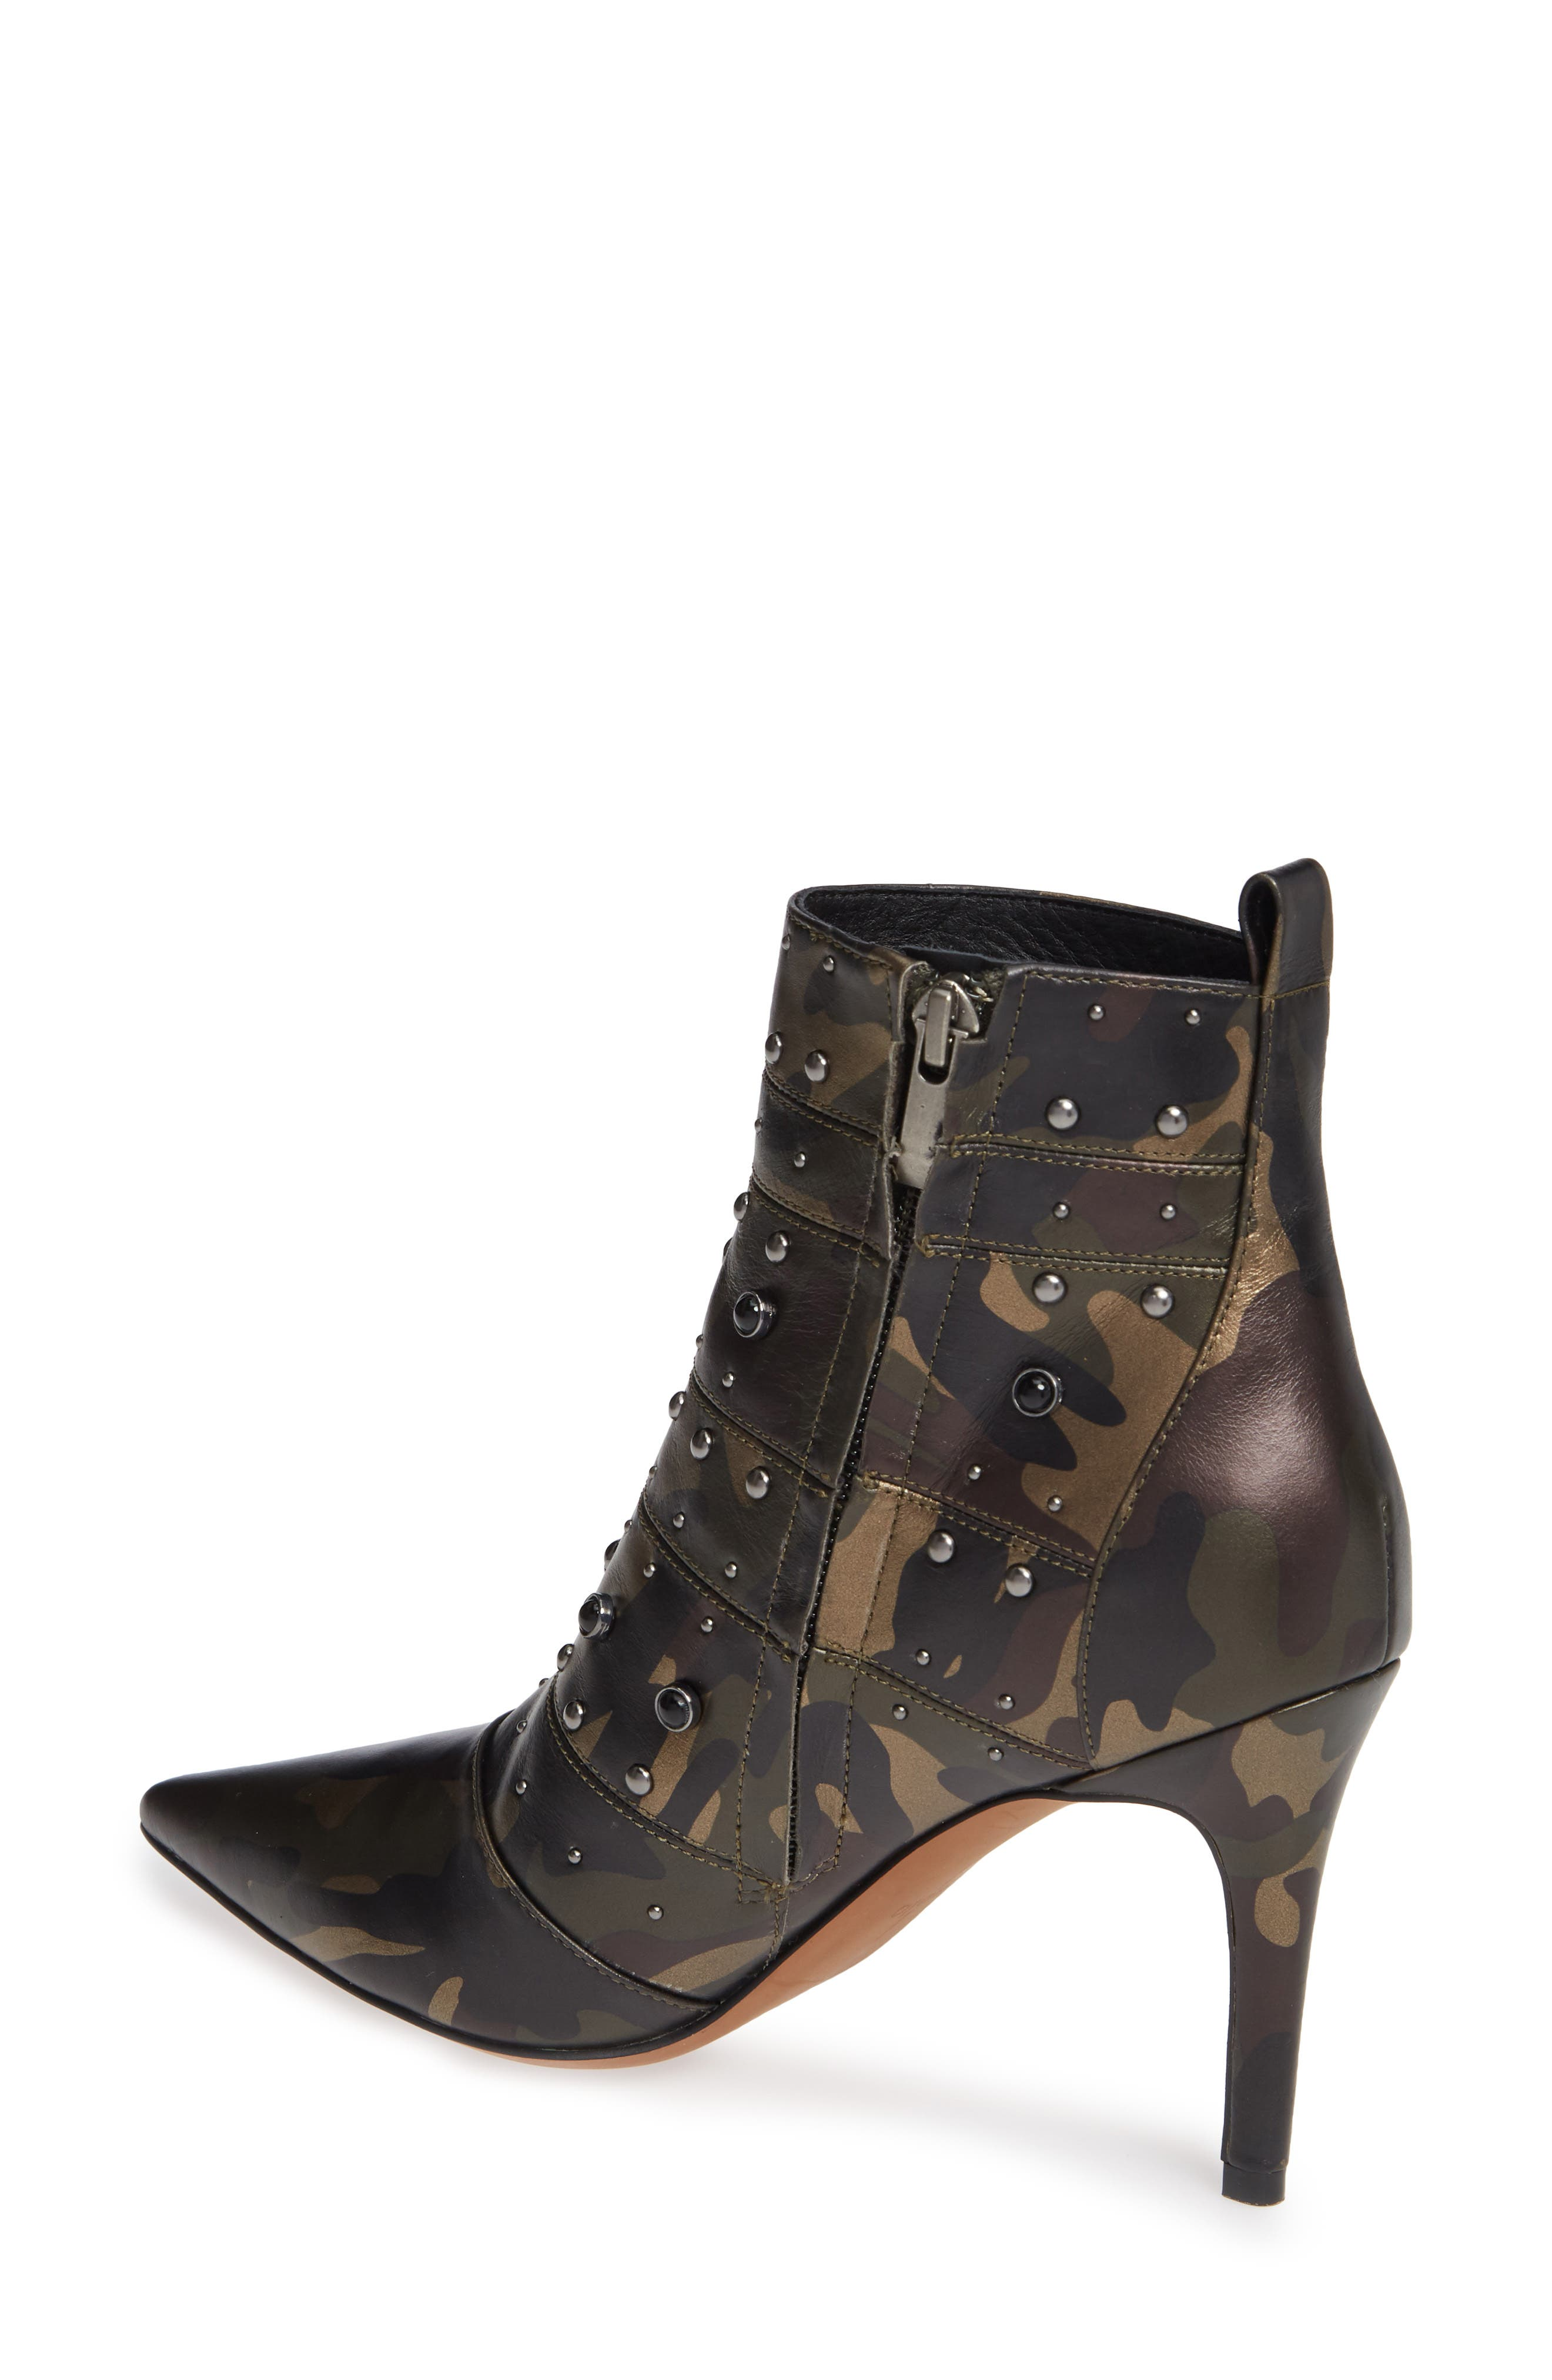 Nara Studded Bootie,                             Alternate thumbnail 2, color,                             CAMO LEATHER